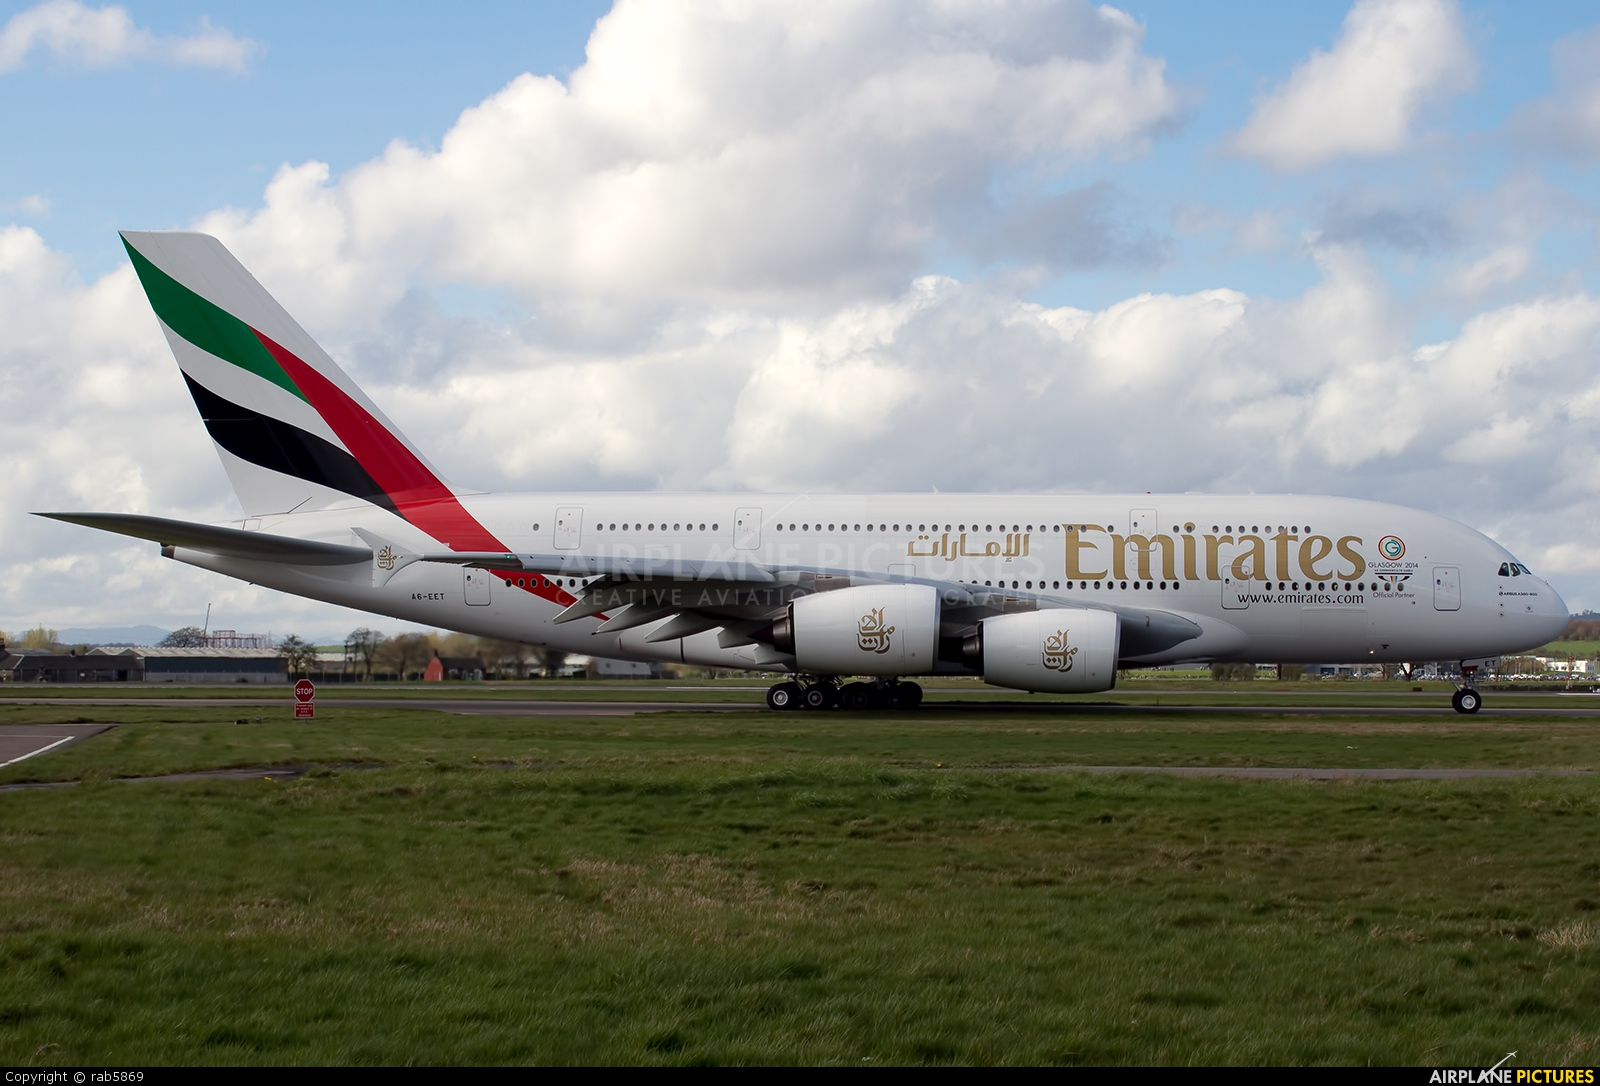 Emirates Airlines A6-EET aircraft at Glasgow